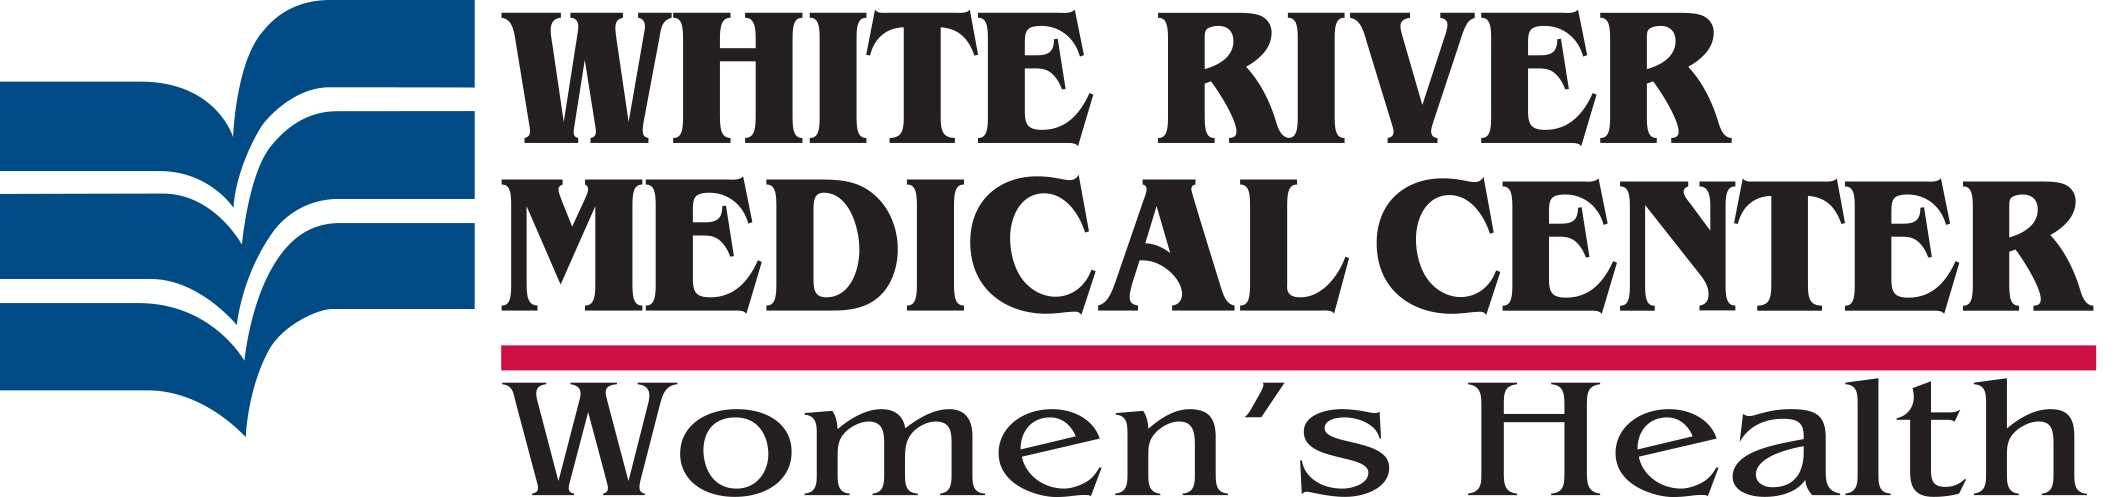 White River Medical Center Women's Health